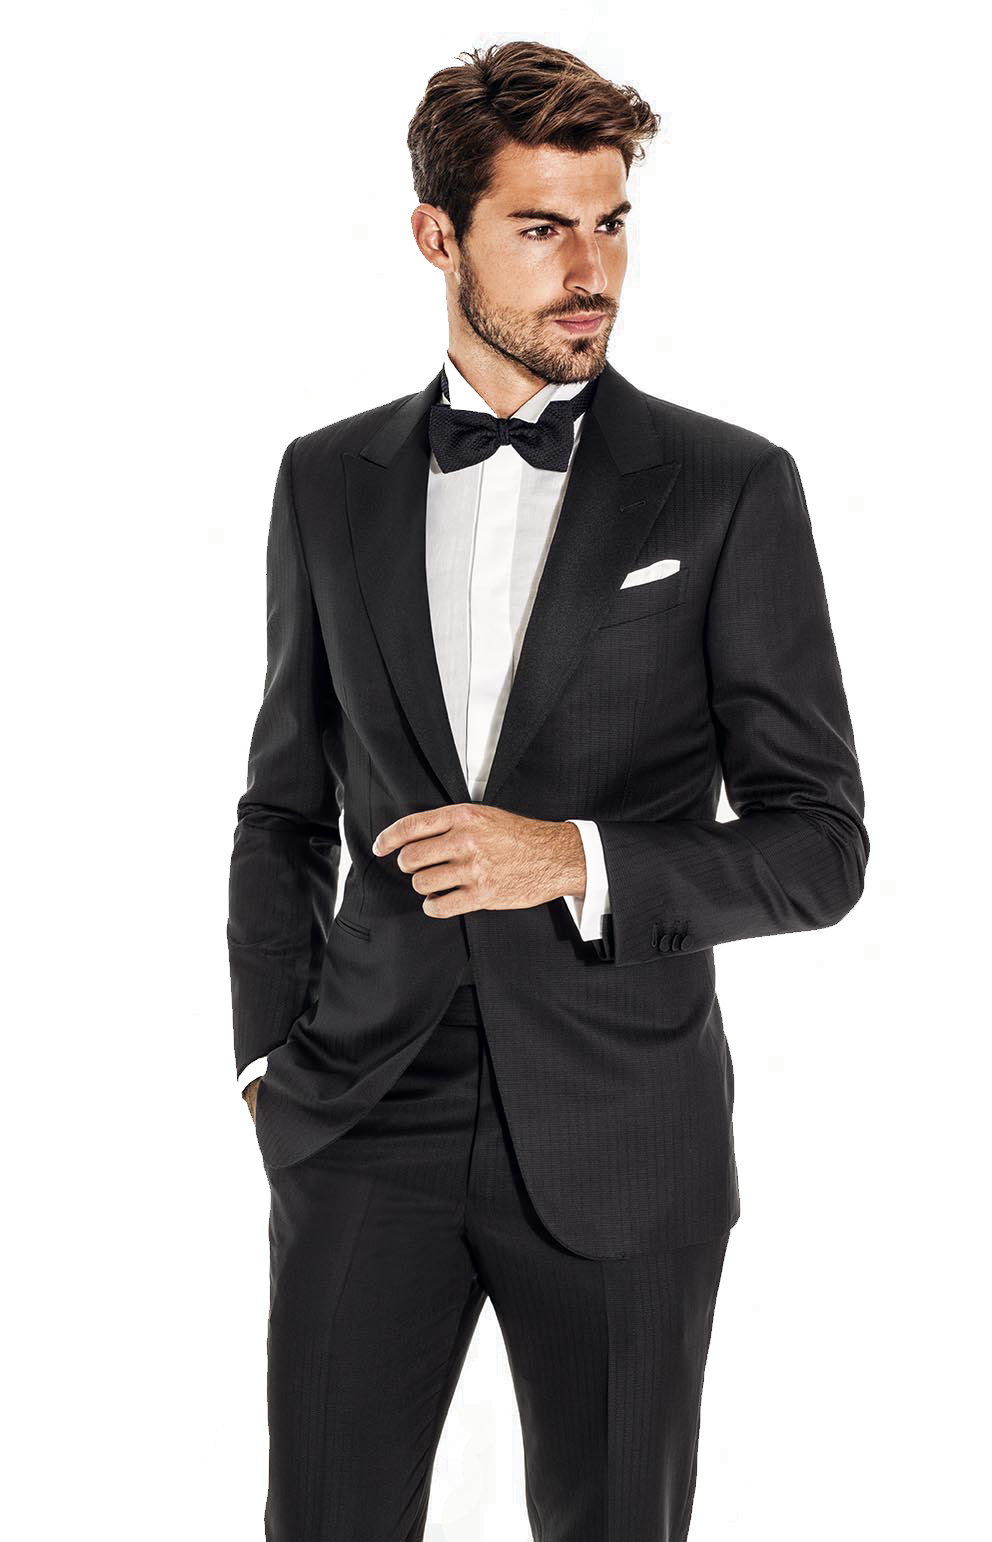 Black man in suit png. Download image arts